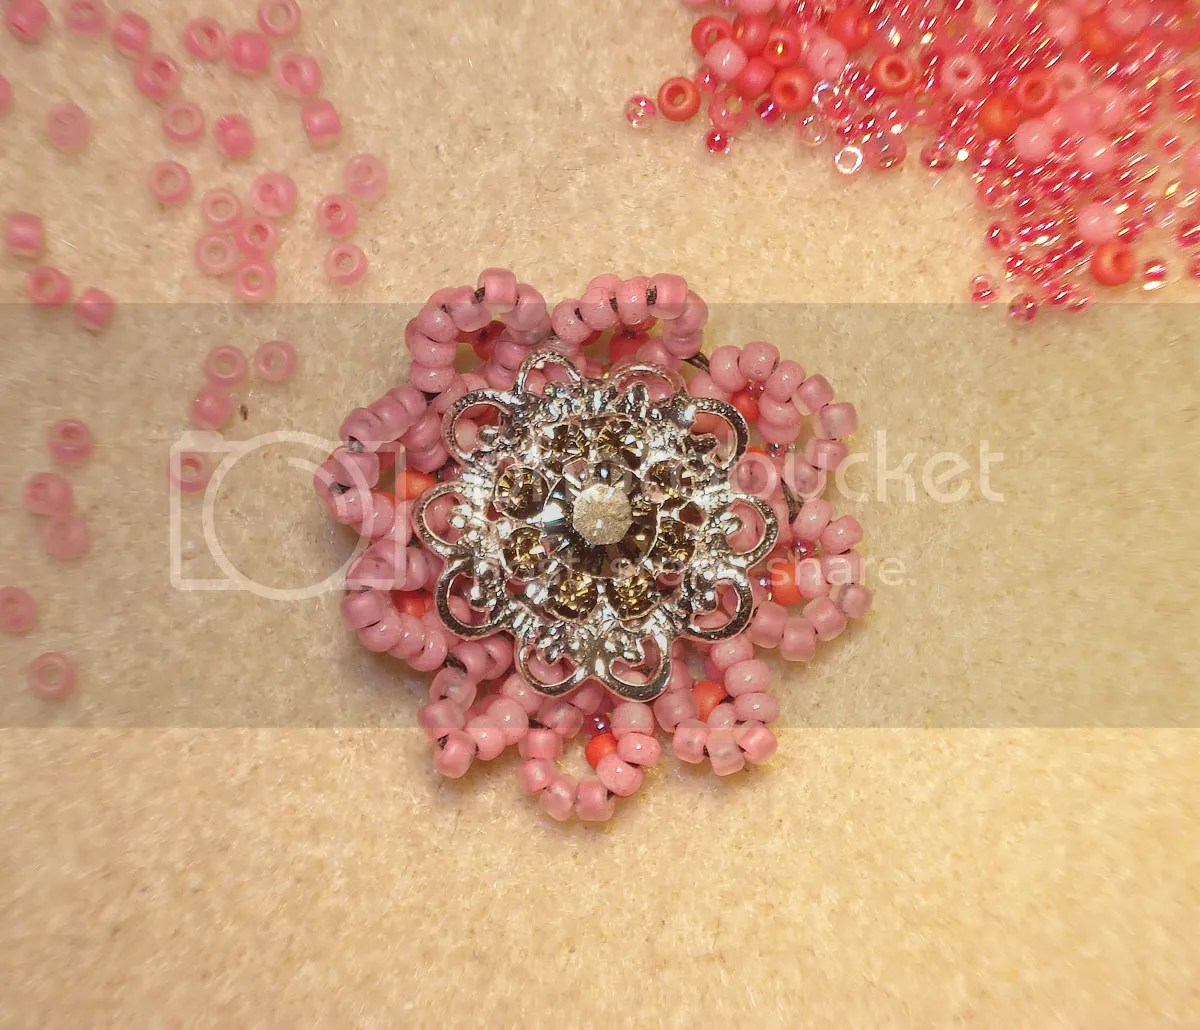 Japanese Czech glass seed beads Beads Direct UK bead embroidery beaded Swarovski filigree flower cocktail ring beadwork etsy